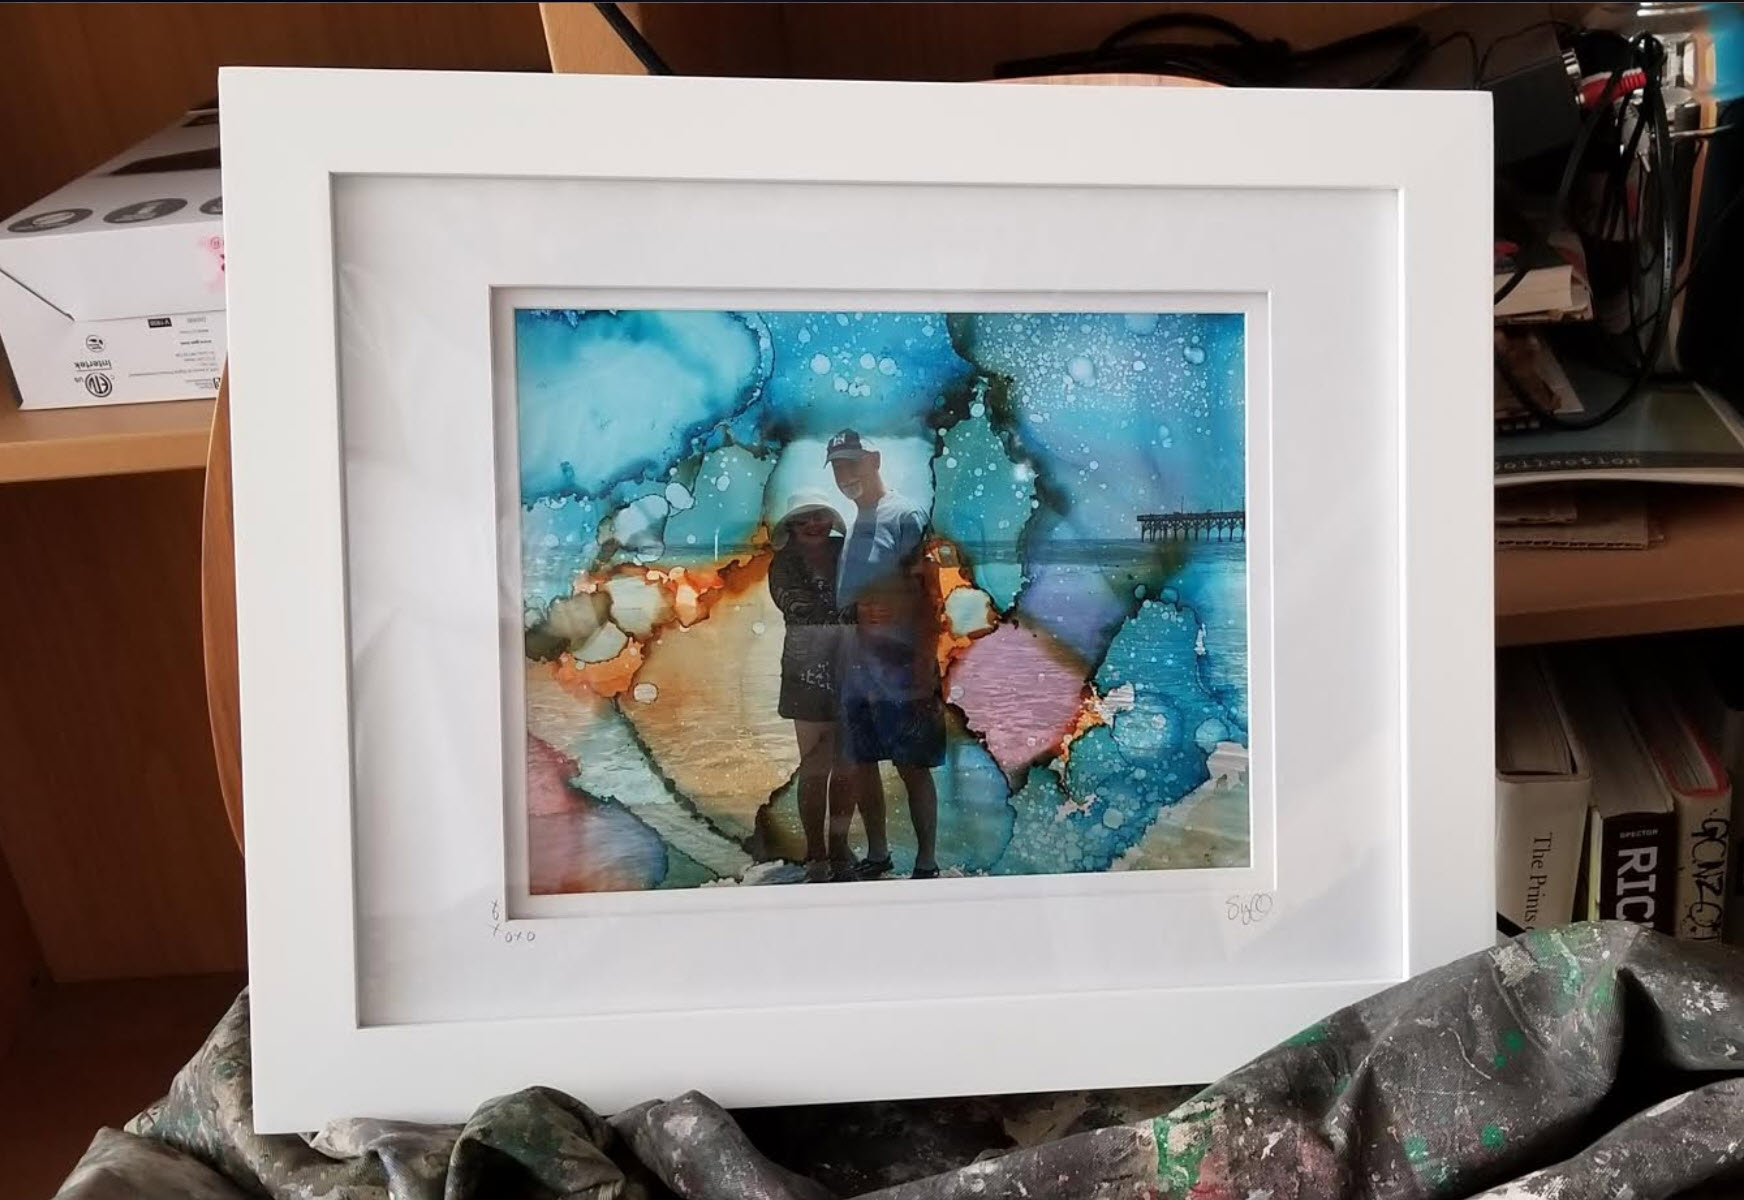 Anniversary photography/ink commission. This couple collected water while on their trip and sent it to me, along with their favorite picture, for their special commission.